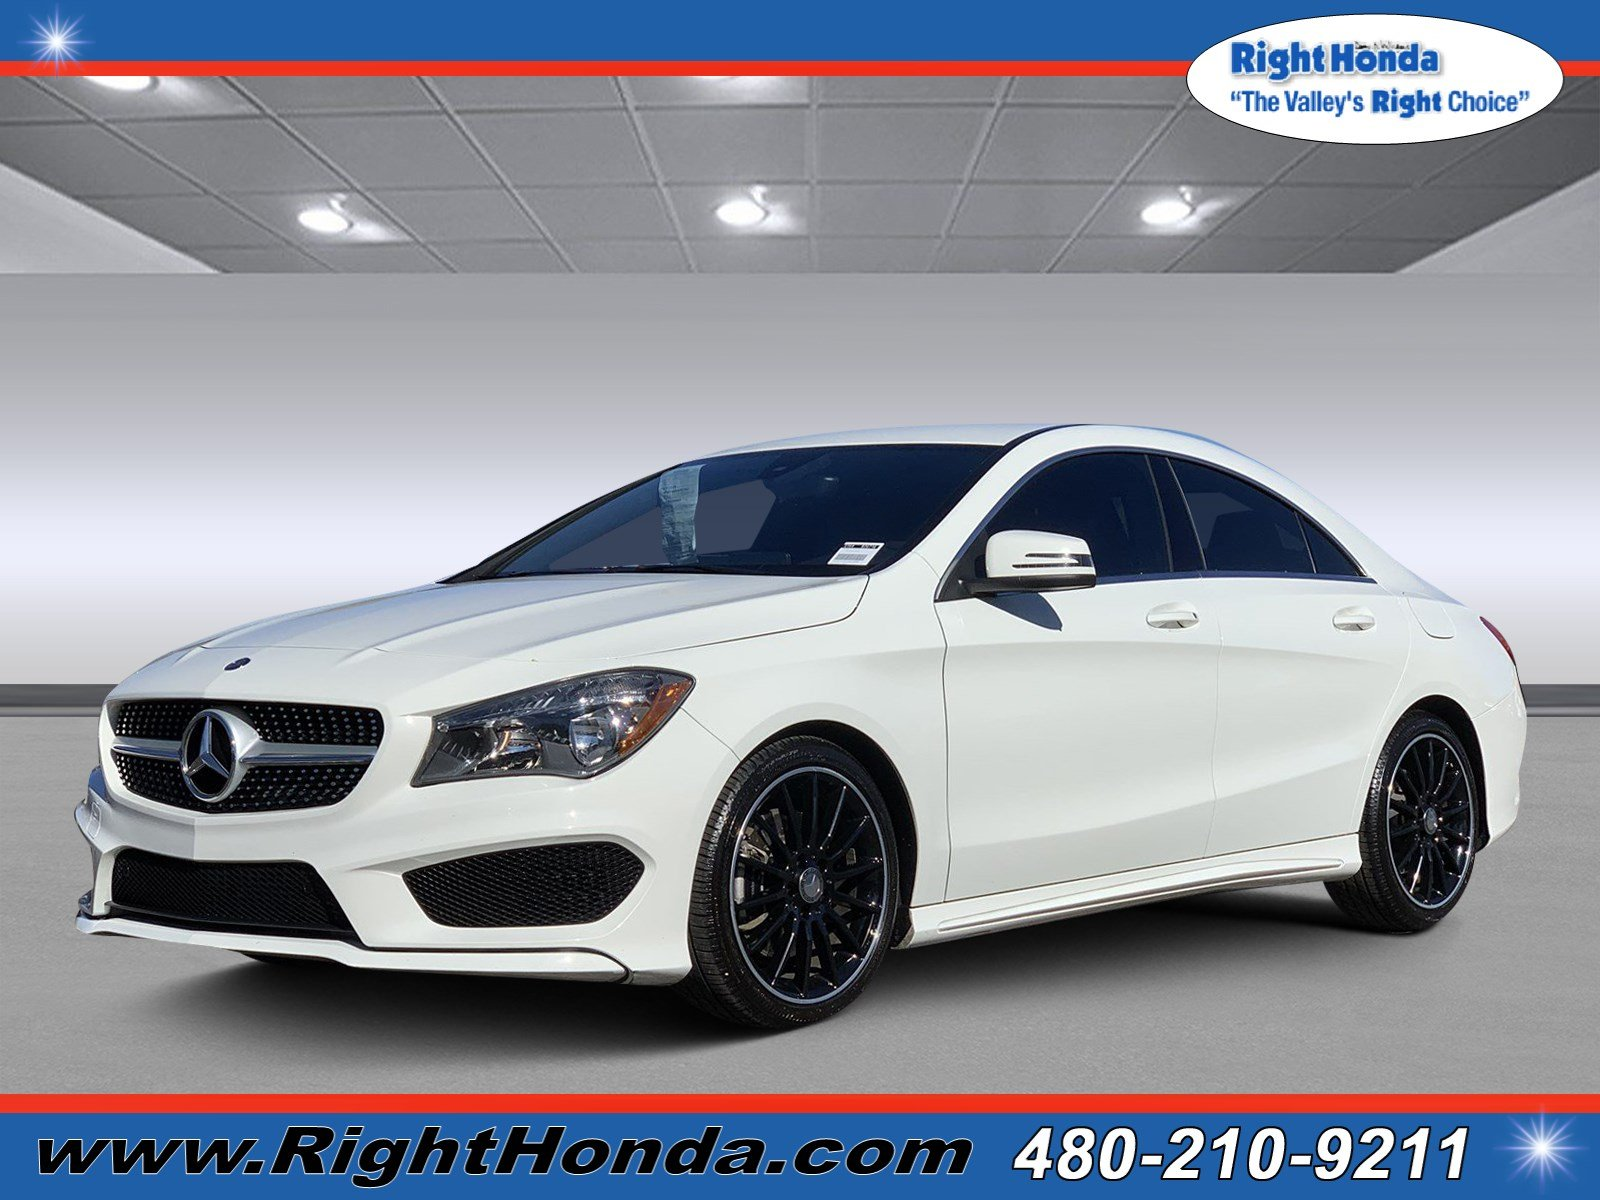 Pre Owned 2015 Mercedes Benz CLA CLA 250 Coupe in Scottsdale